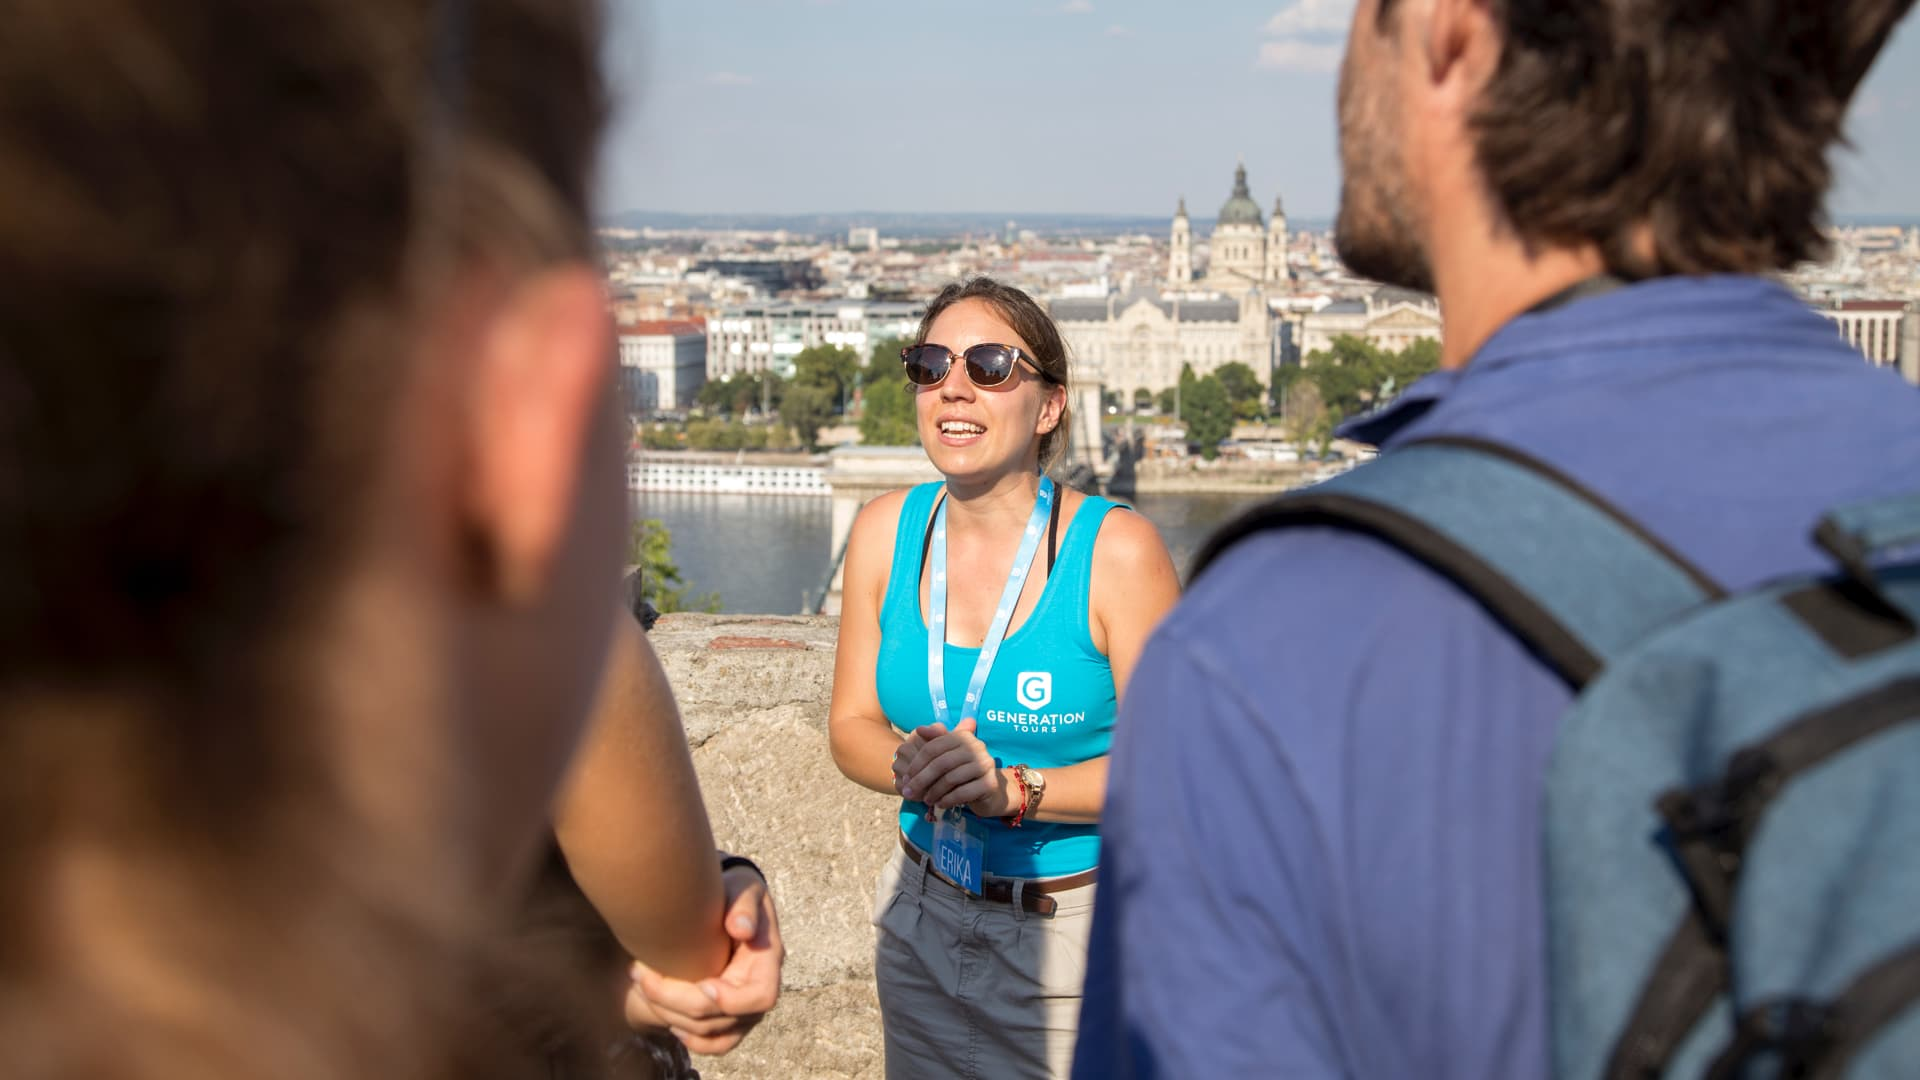 Free Budapest tour group